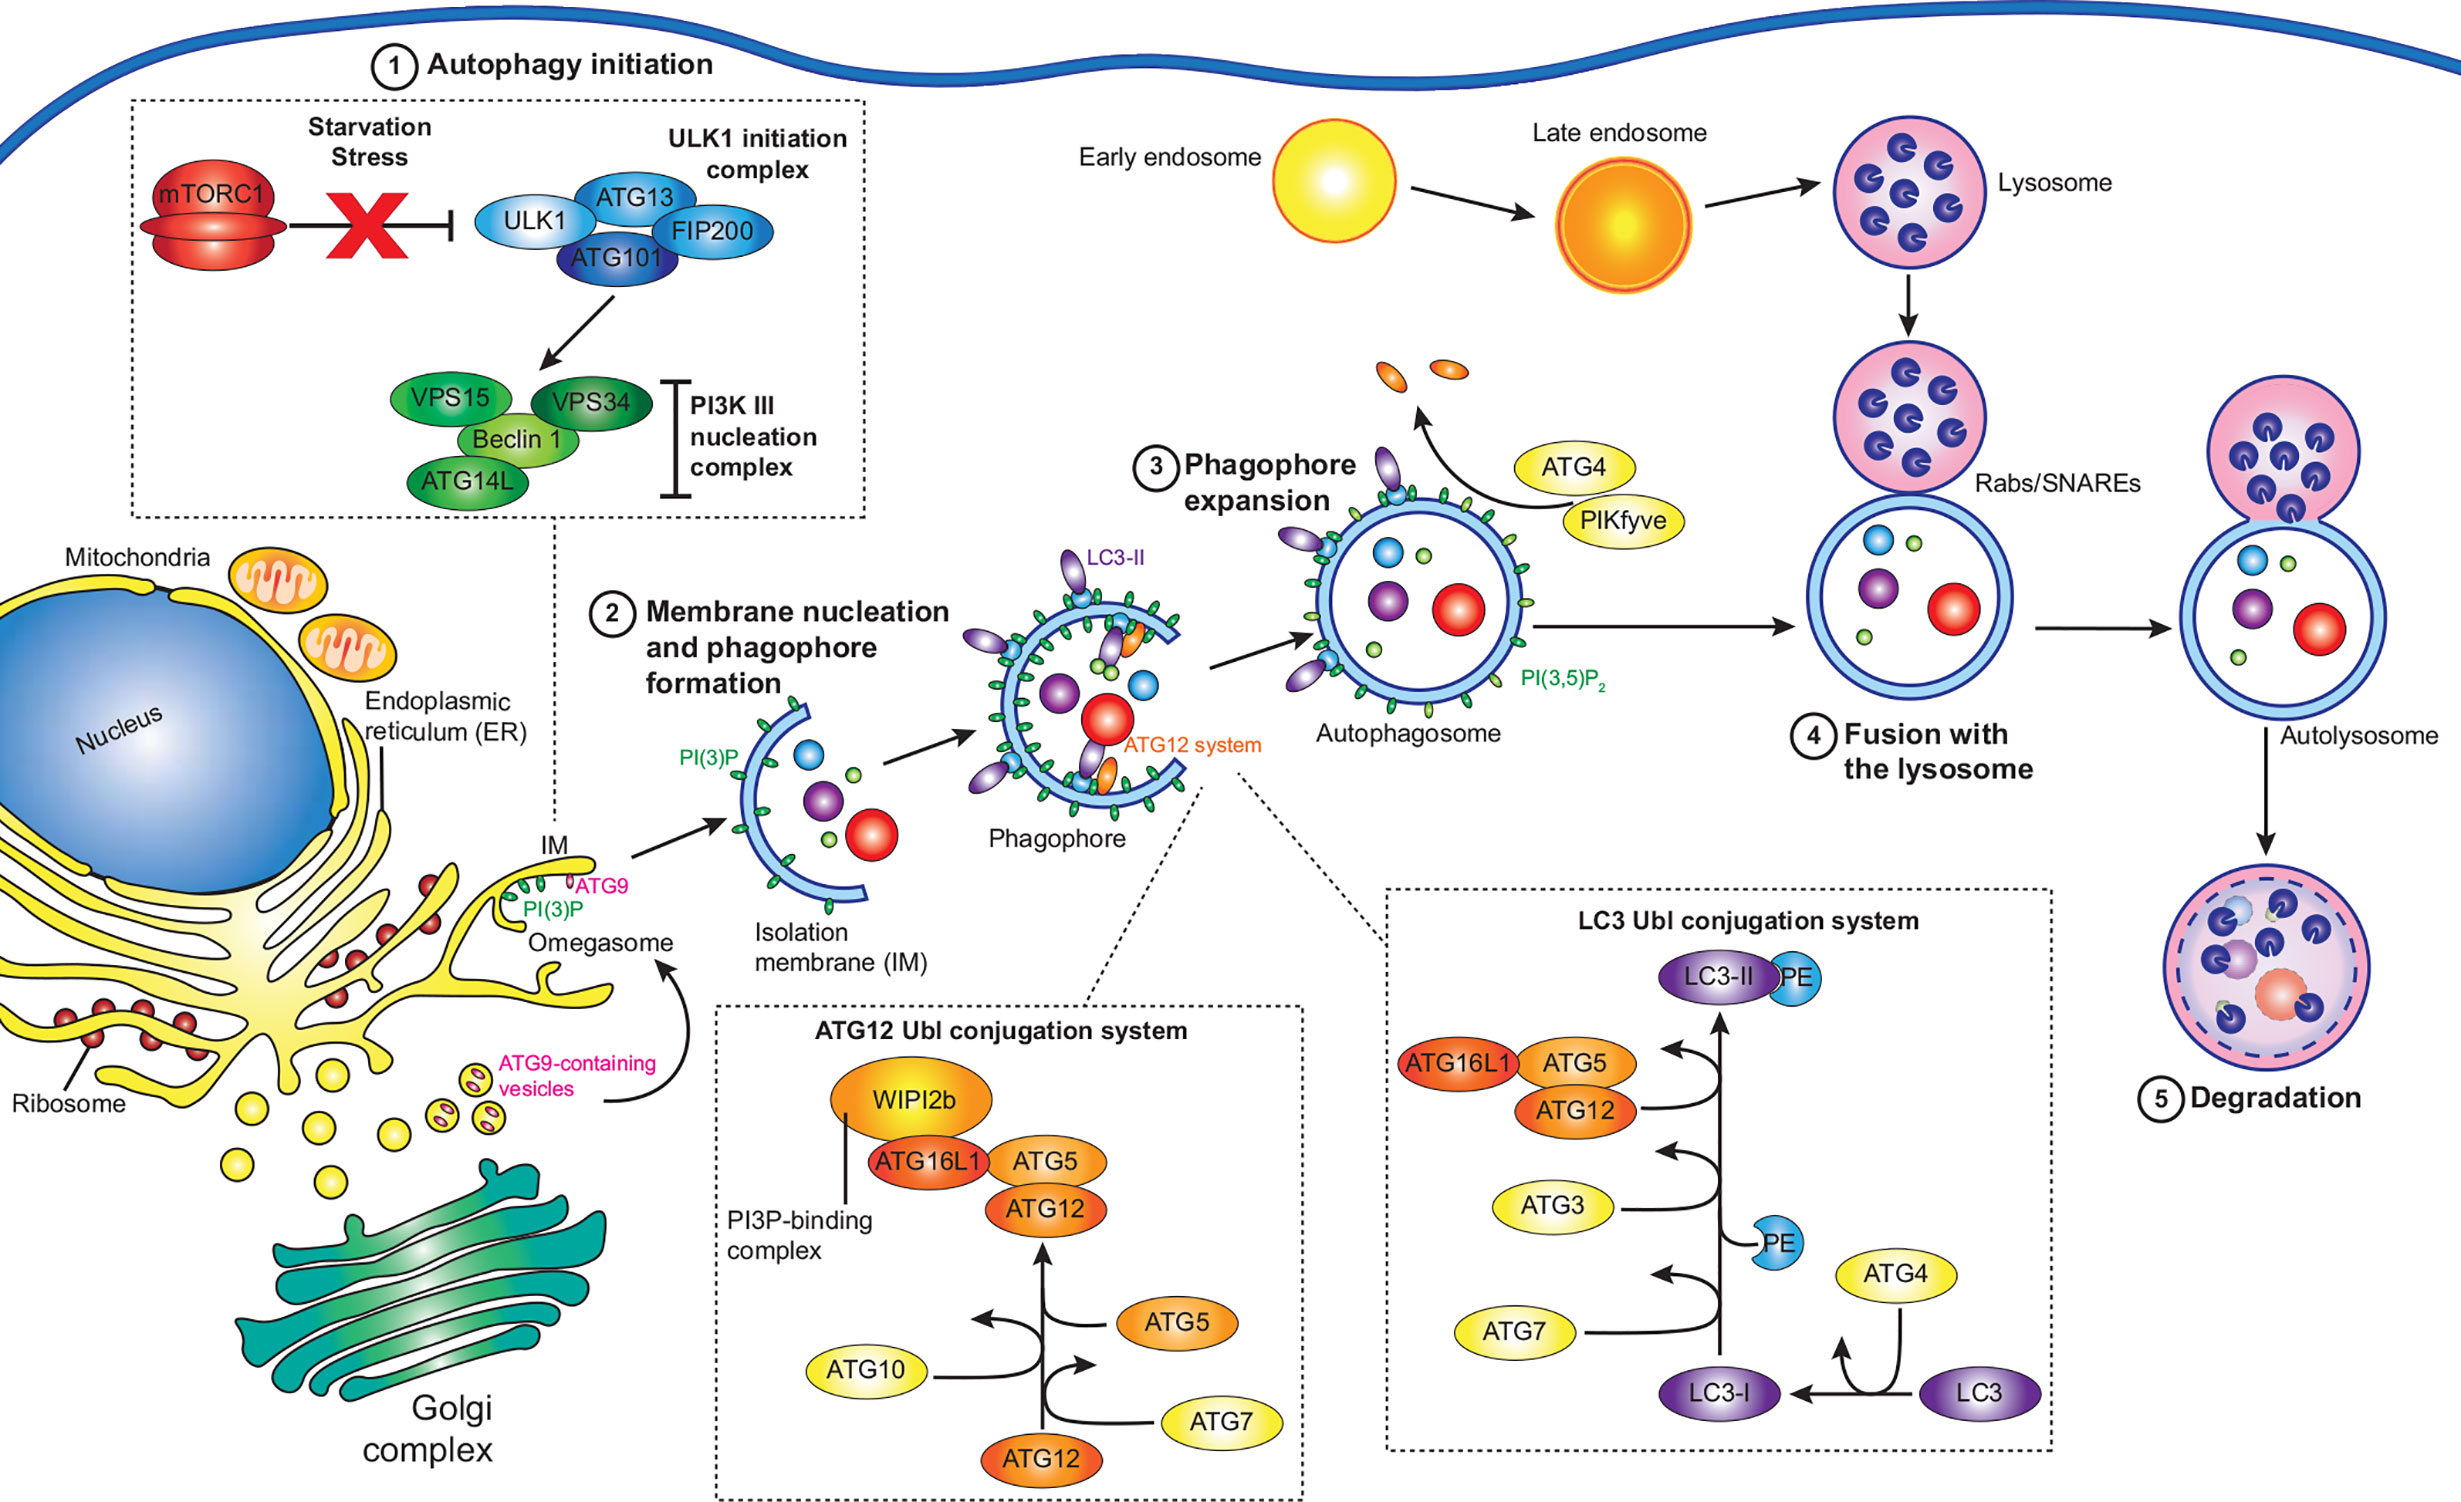 Frontiers Interfering With Autophagy The Opposing Strategies Deployed By Legionella Pneumophila And Coxiella Burnetii Effector Proteins Cellular And Infection Microbiology